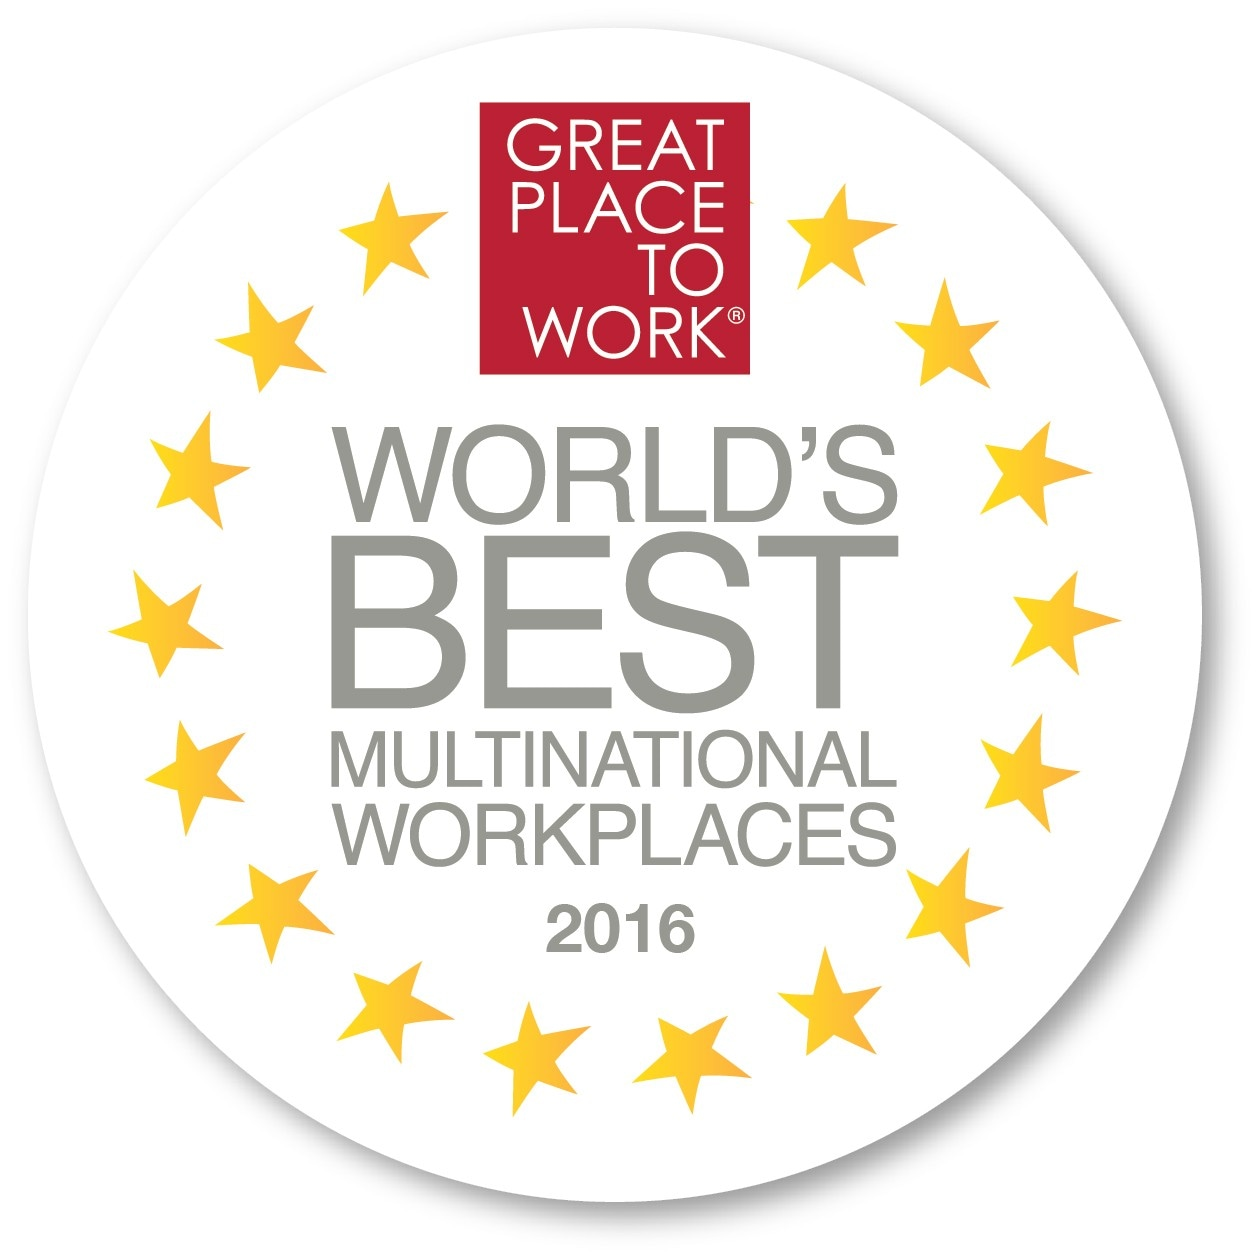 GPTW Multinational Workplaces 2016